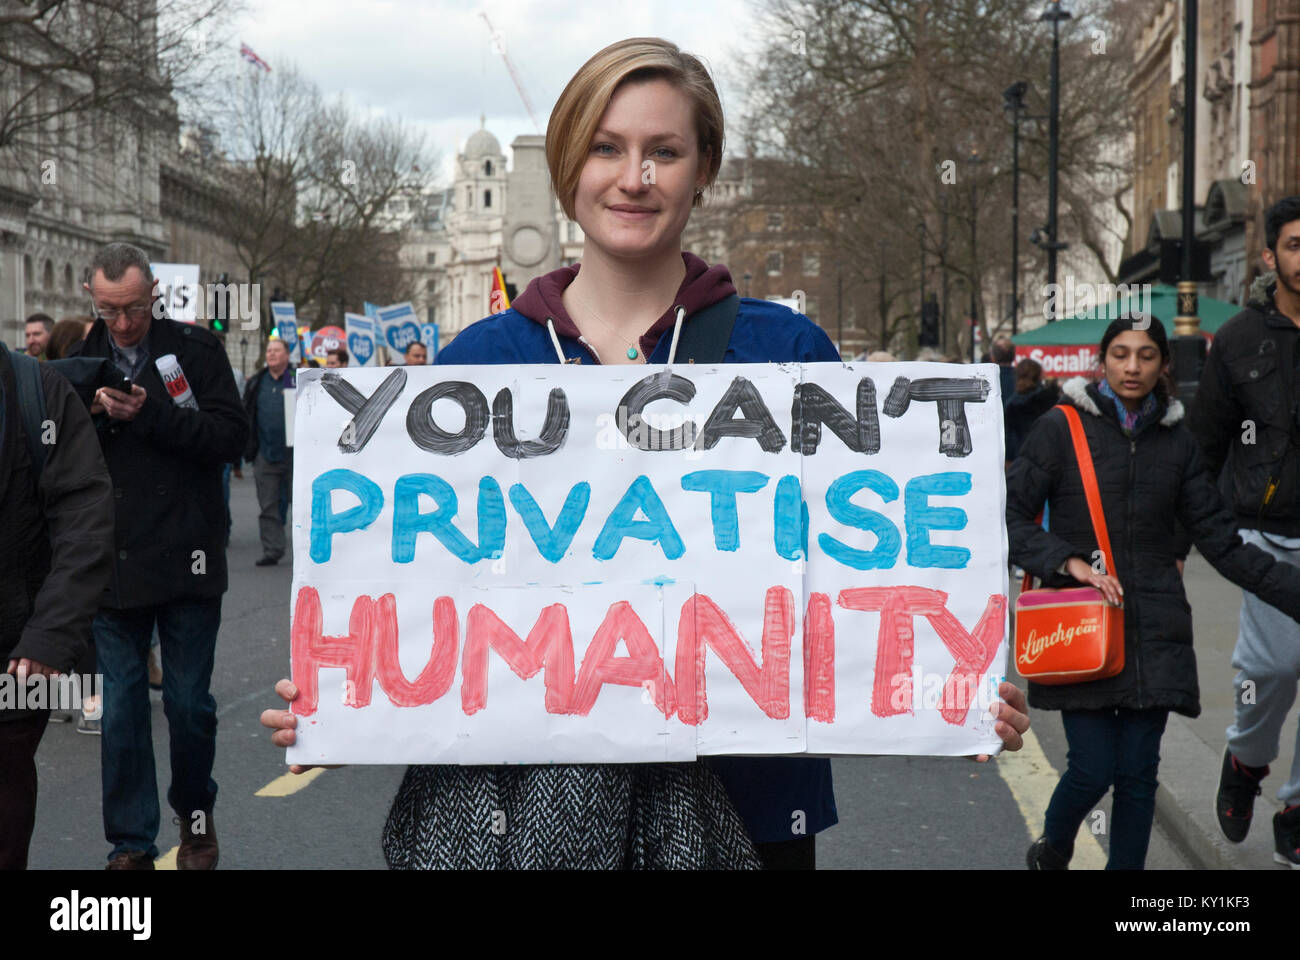 Demonstration in support of NHS, a smiling young woman carrying poster 'You can't privatise humanity' - Stock Image